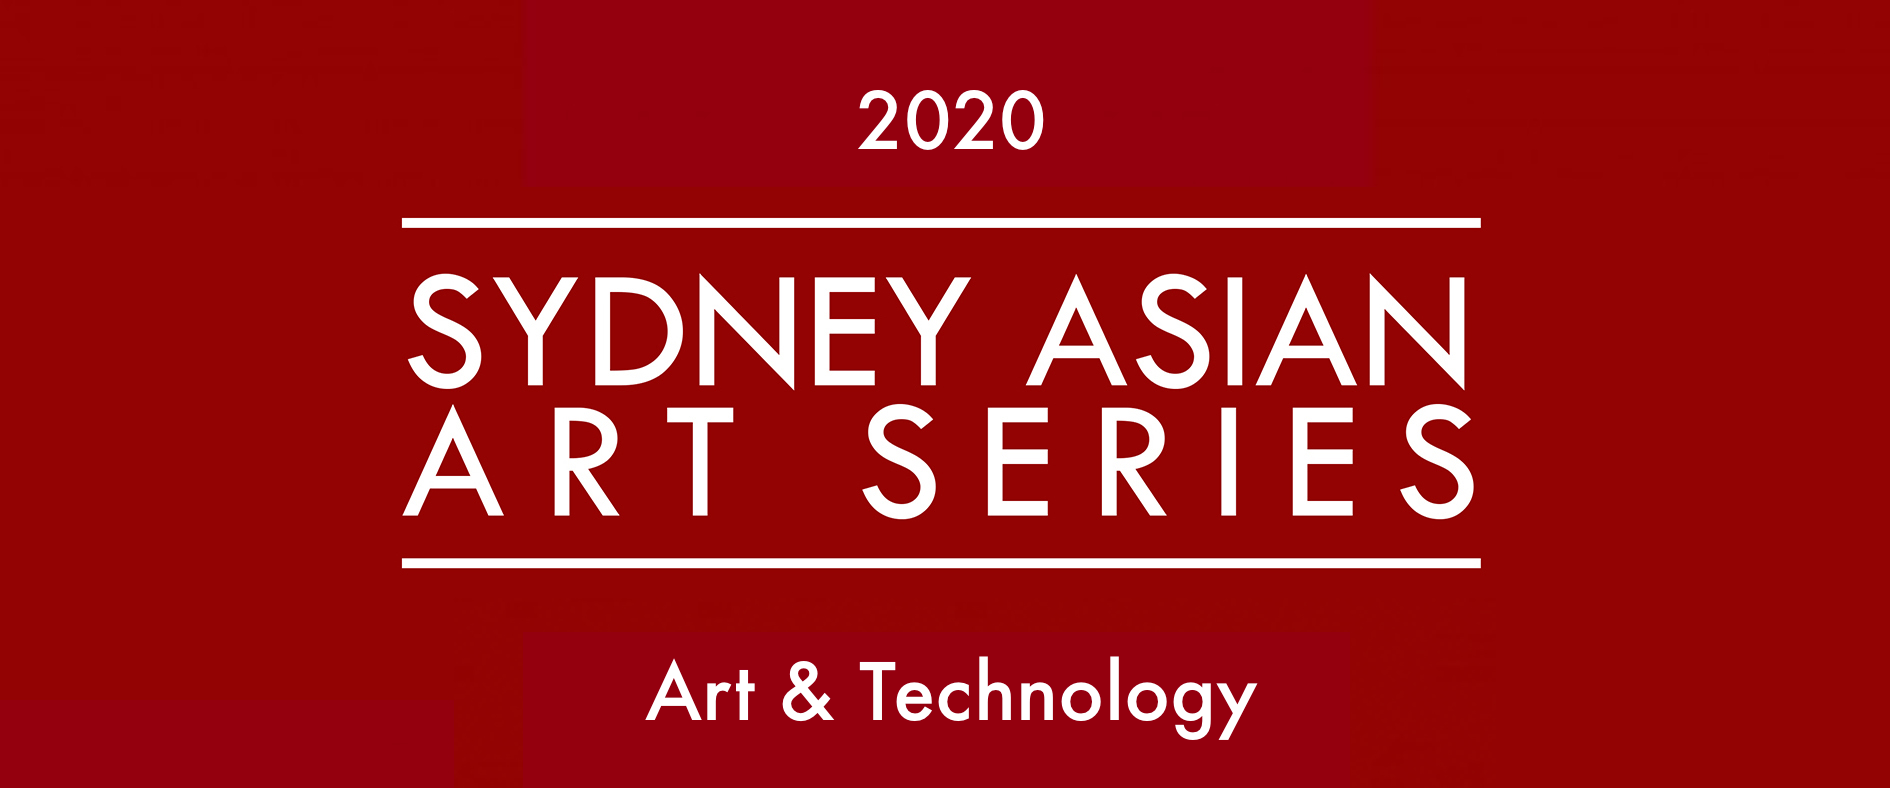 Sydney Asian Art Series 2020